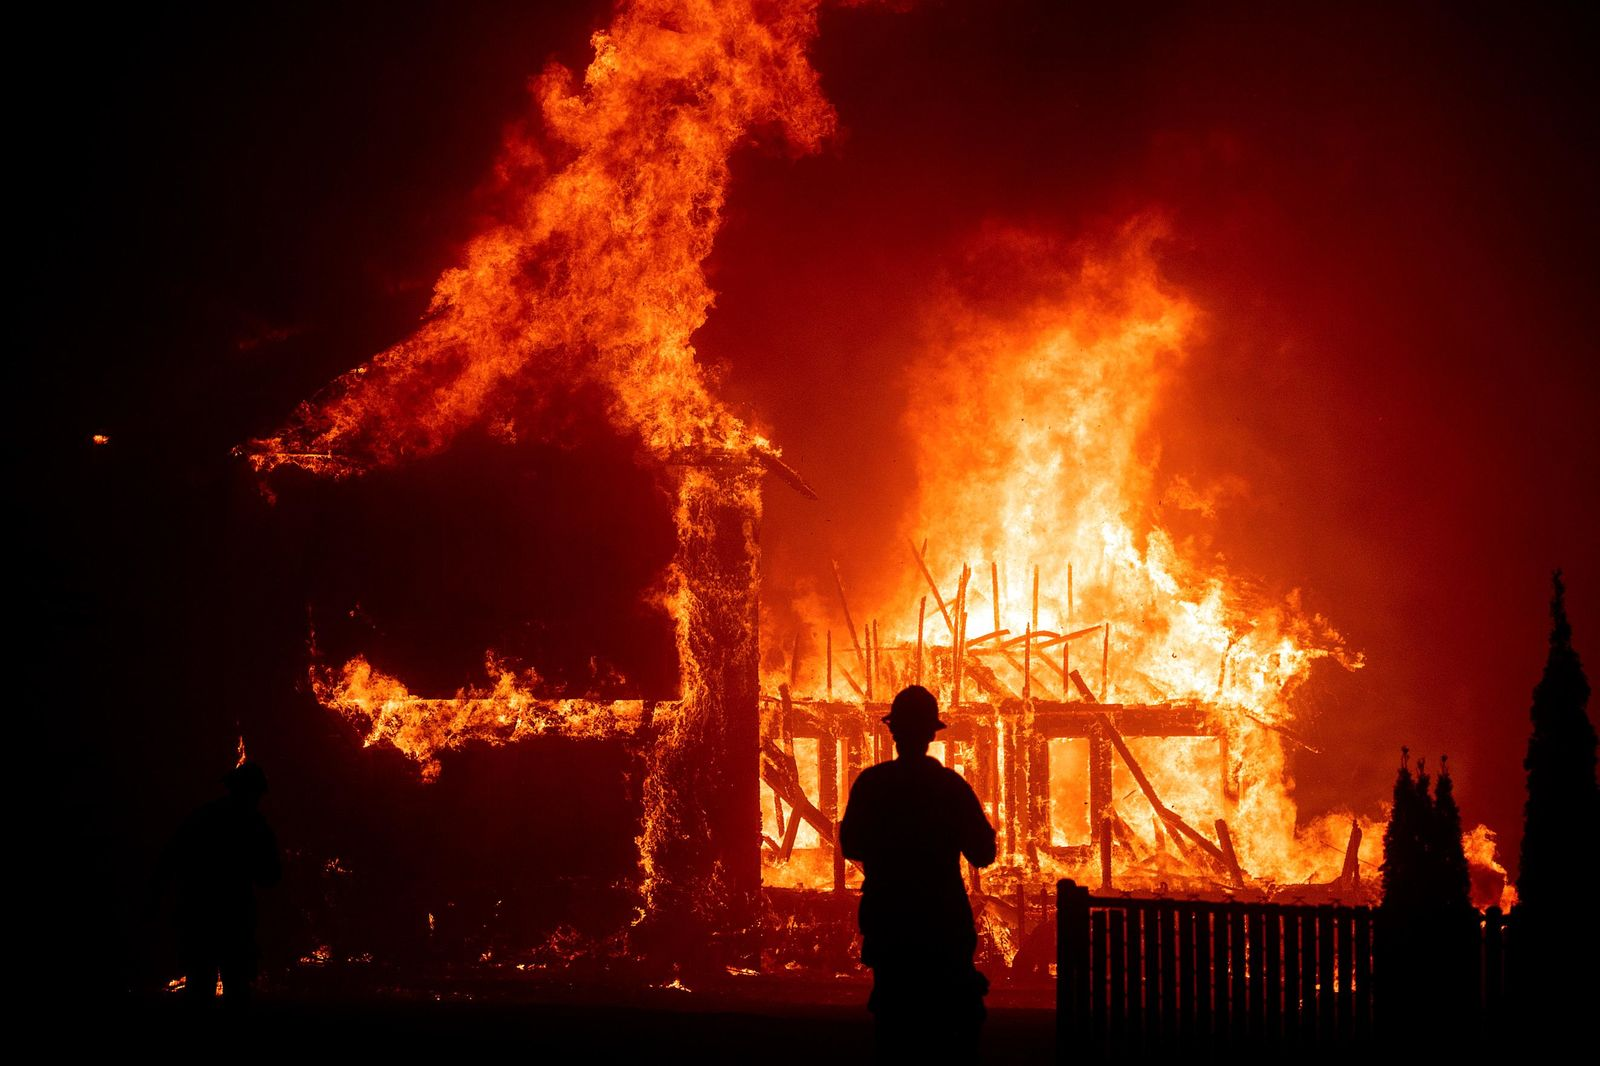 FILE - In this Nov. 8, 2018, file photo, a home burns during a wildfire in Paradise, Calif. Paradise High School, in the Northern California town that was mostly destroyed by a wildfire in November 2018, is scheduled to play its first football game Friday, Aug. 23, 2019. (AP Photo/Noah Berger, File)